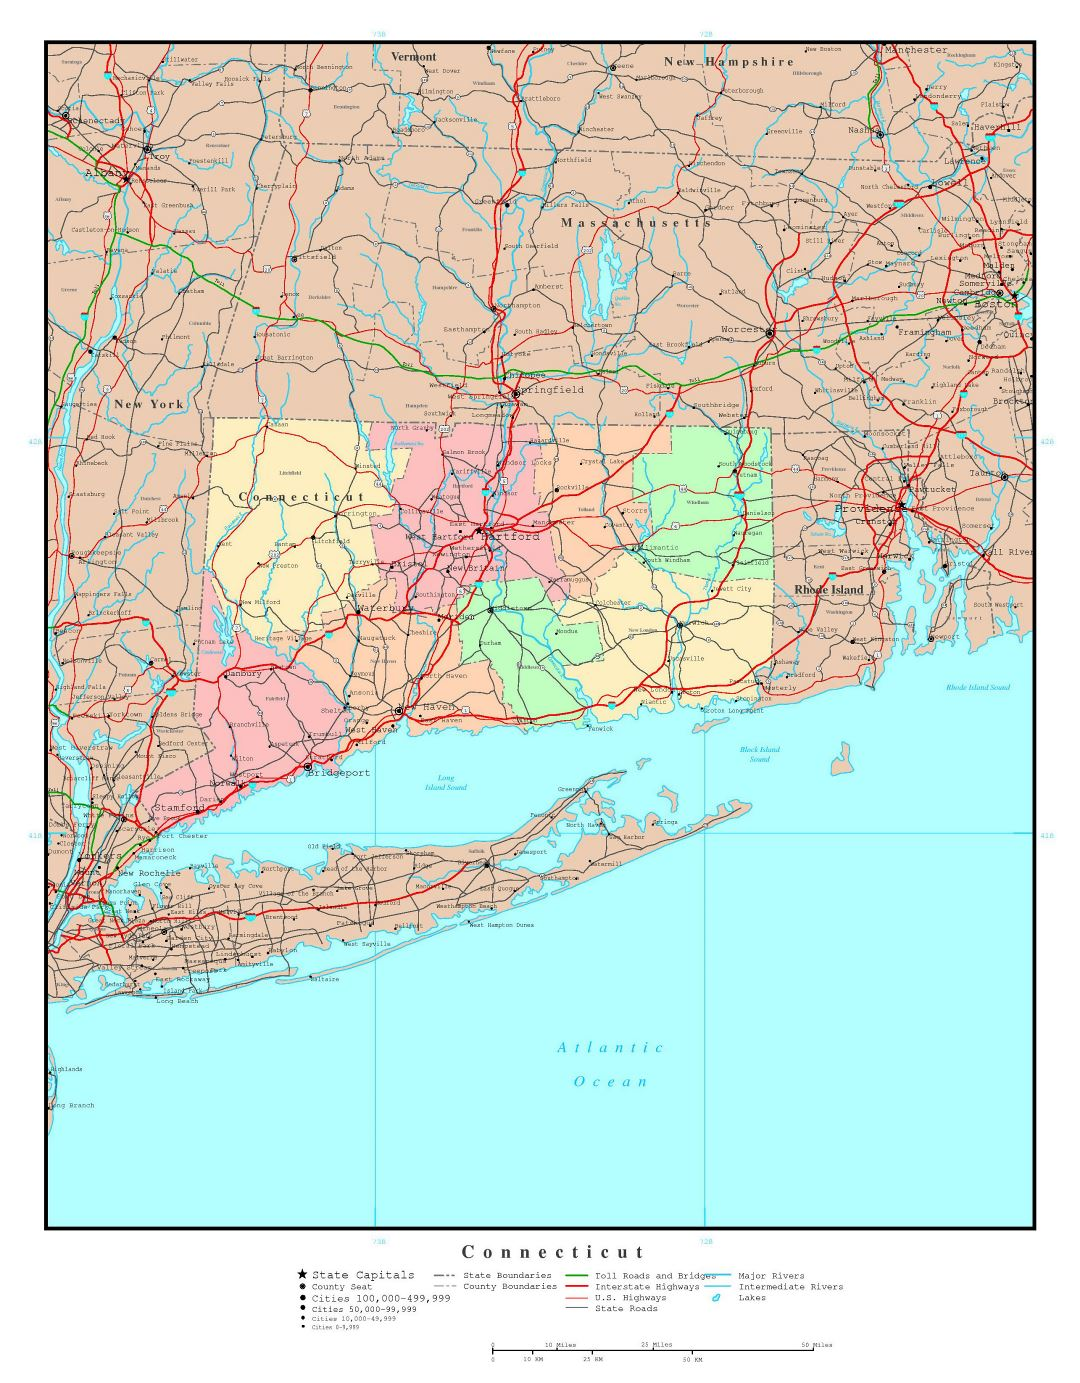 Large administrative map of Connecticut state with roads, highways and major cities